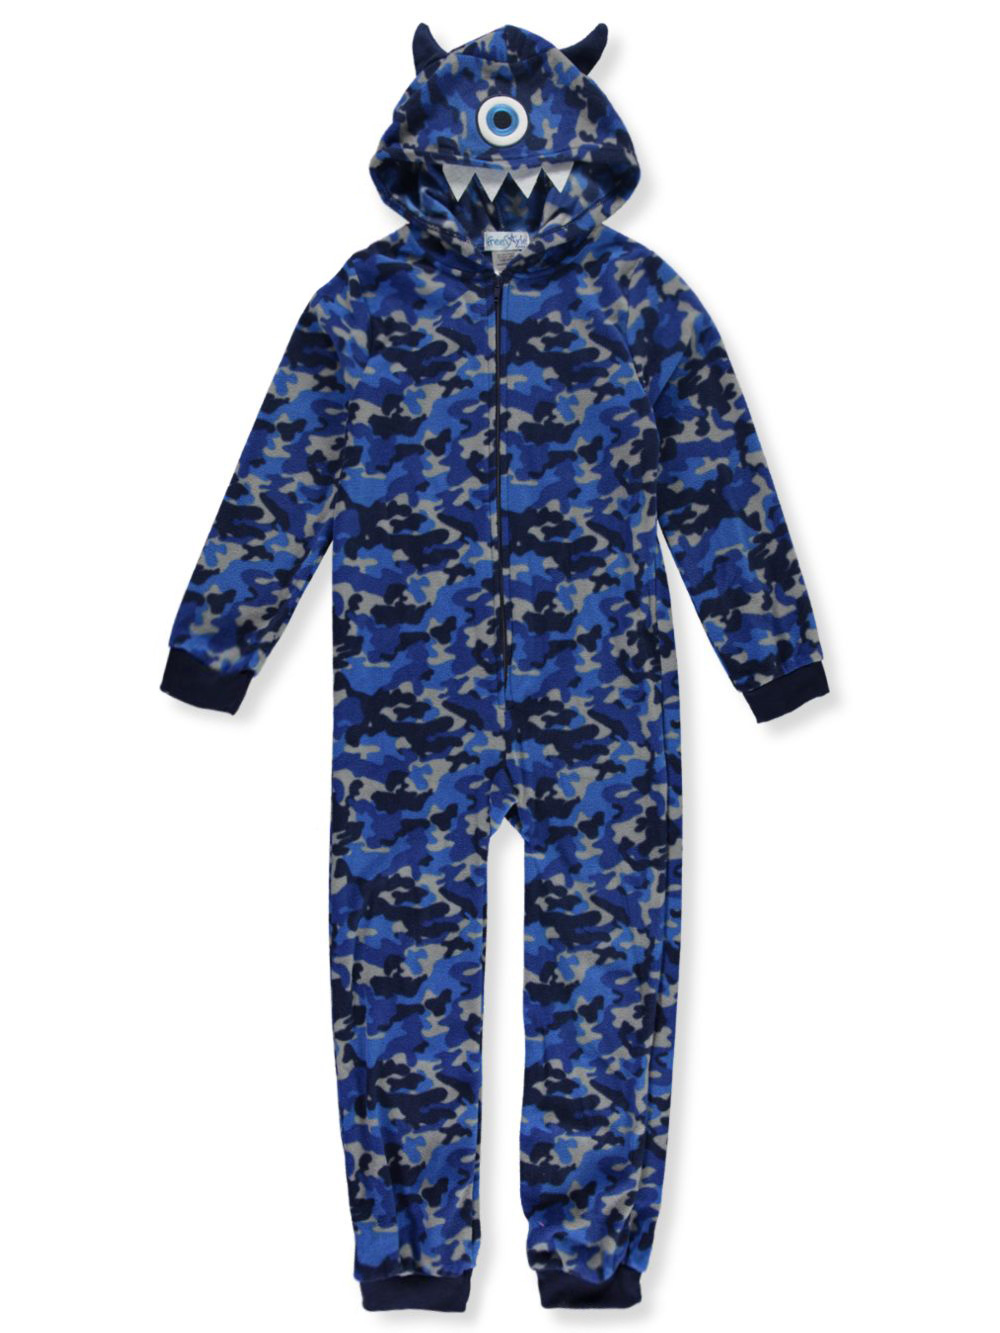 Boys Fashion Plush 1-Piece Pajama Suit